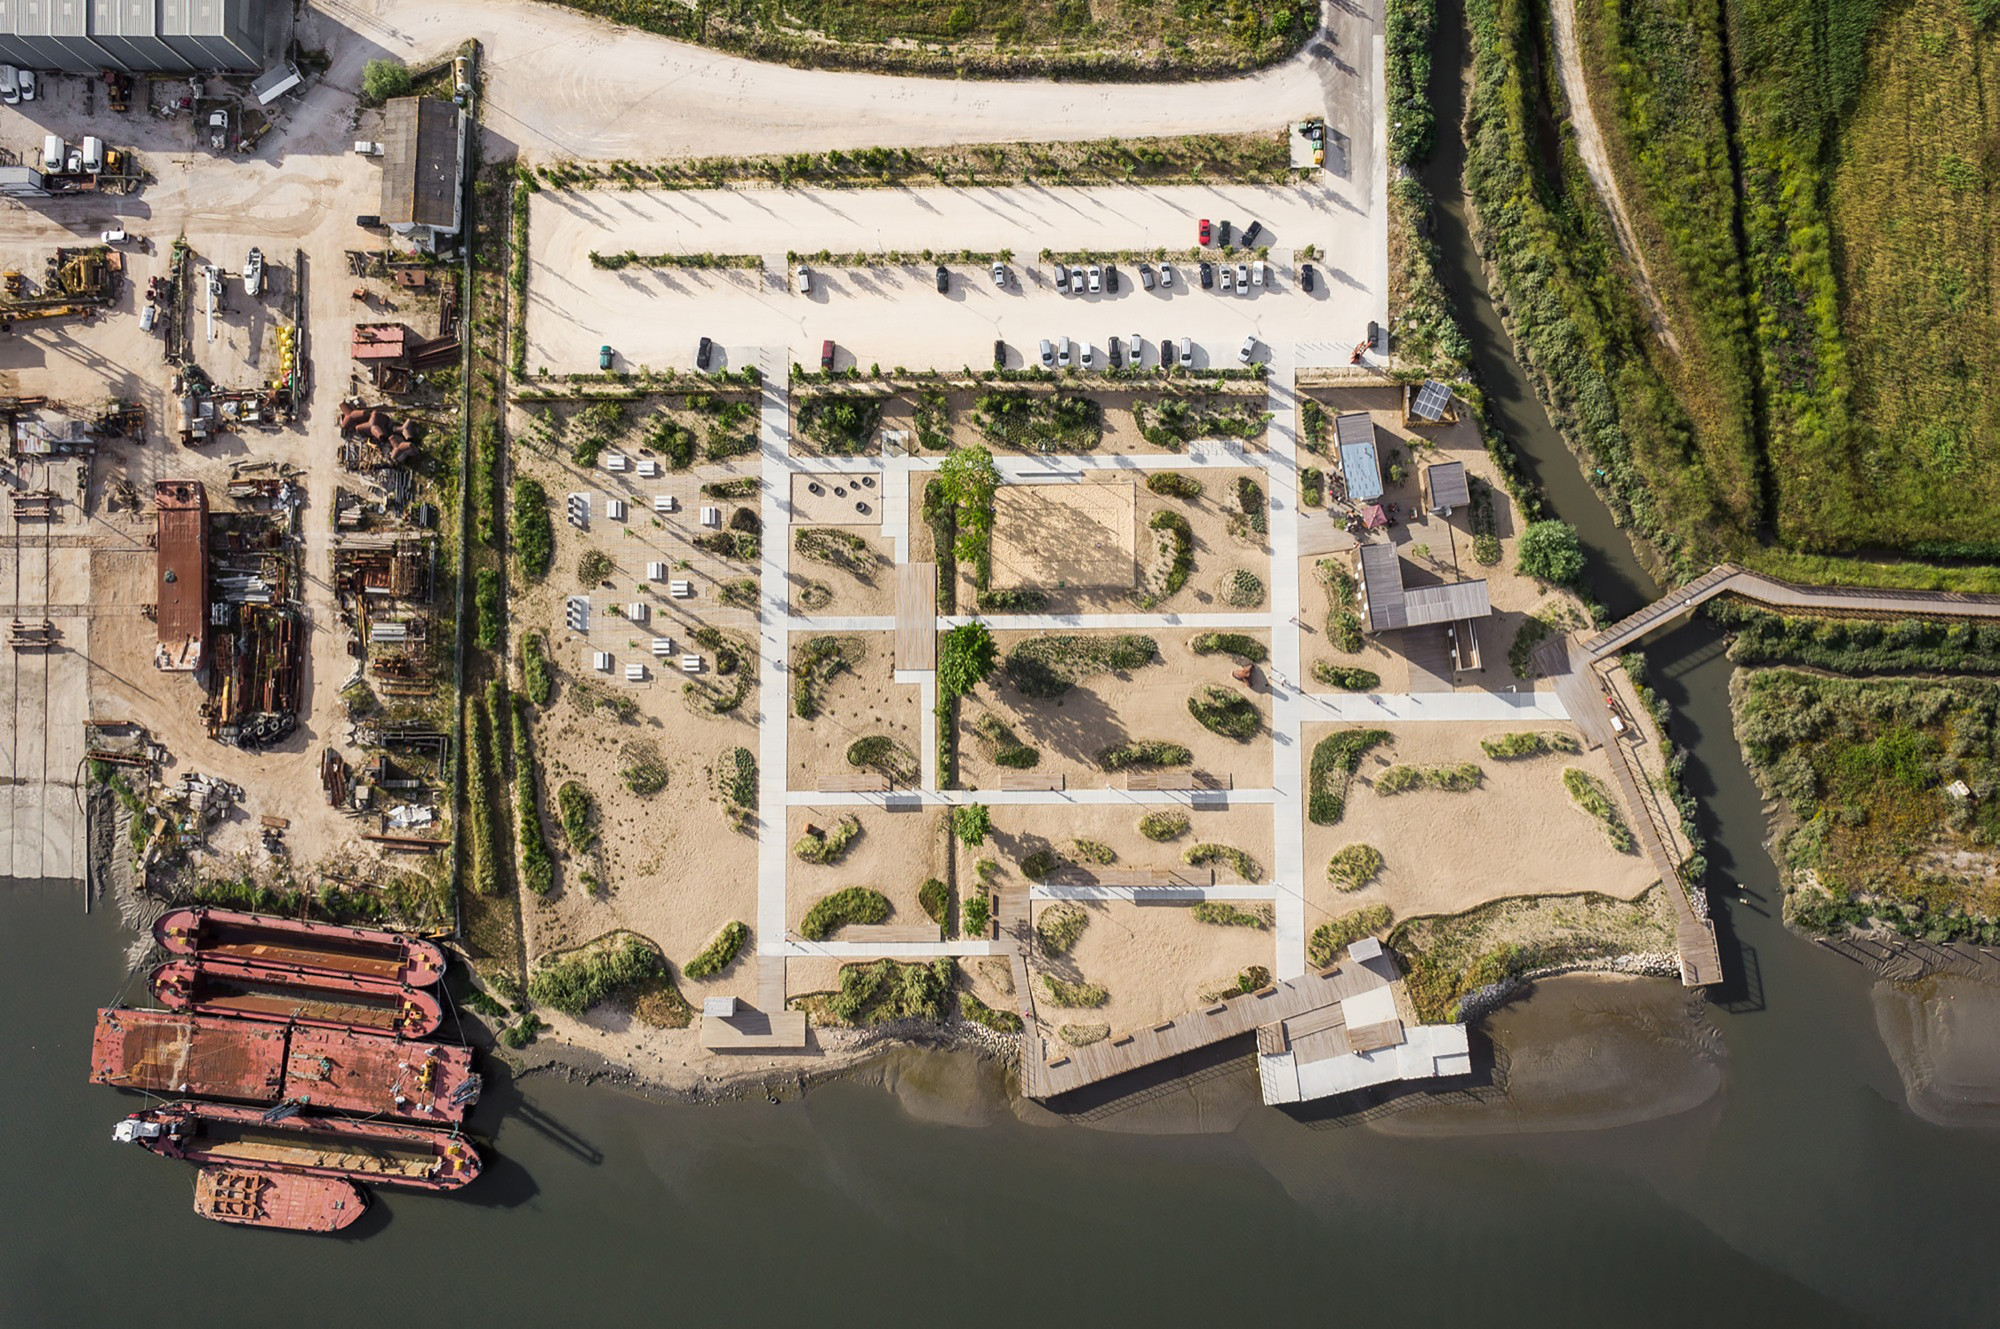 Tagus linear park topiaris landscape architecture for Area landscape architects